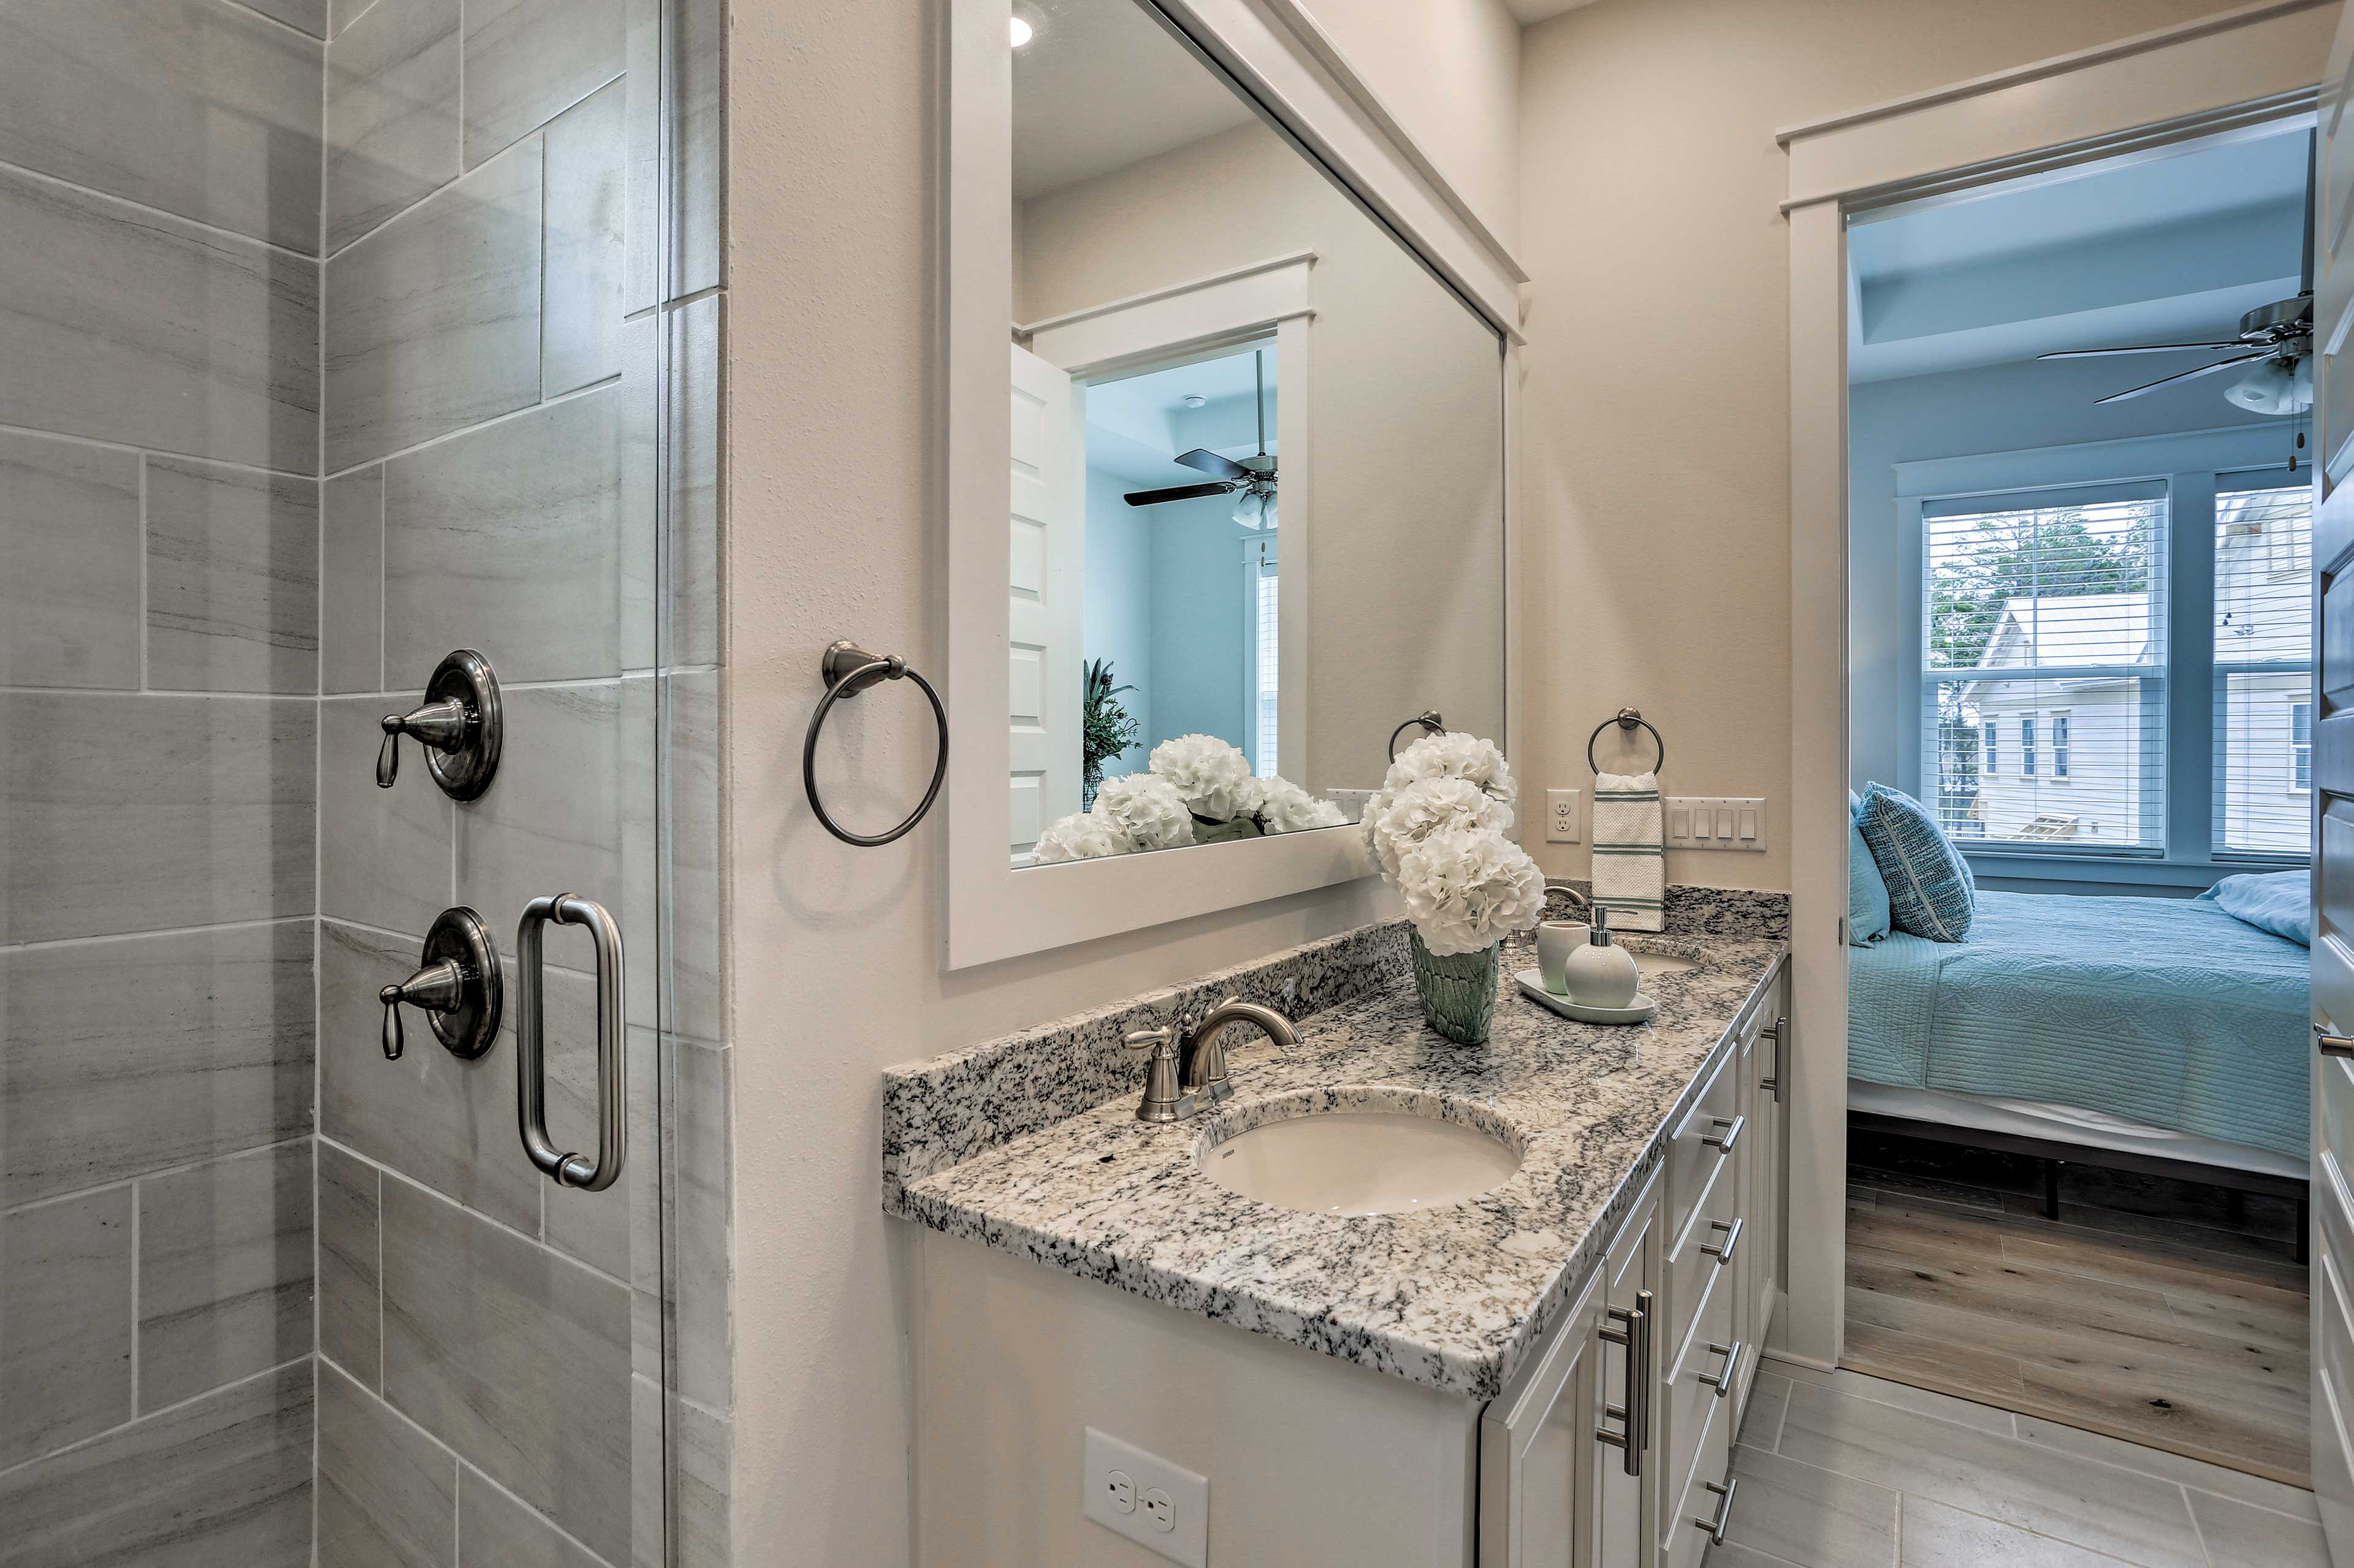 The master en-suite bathroom offers a walk-in shower and dual sinks.